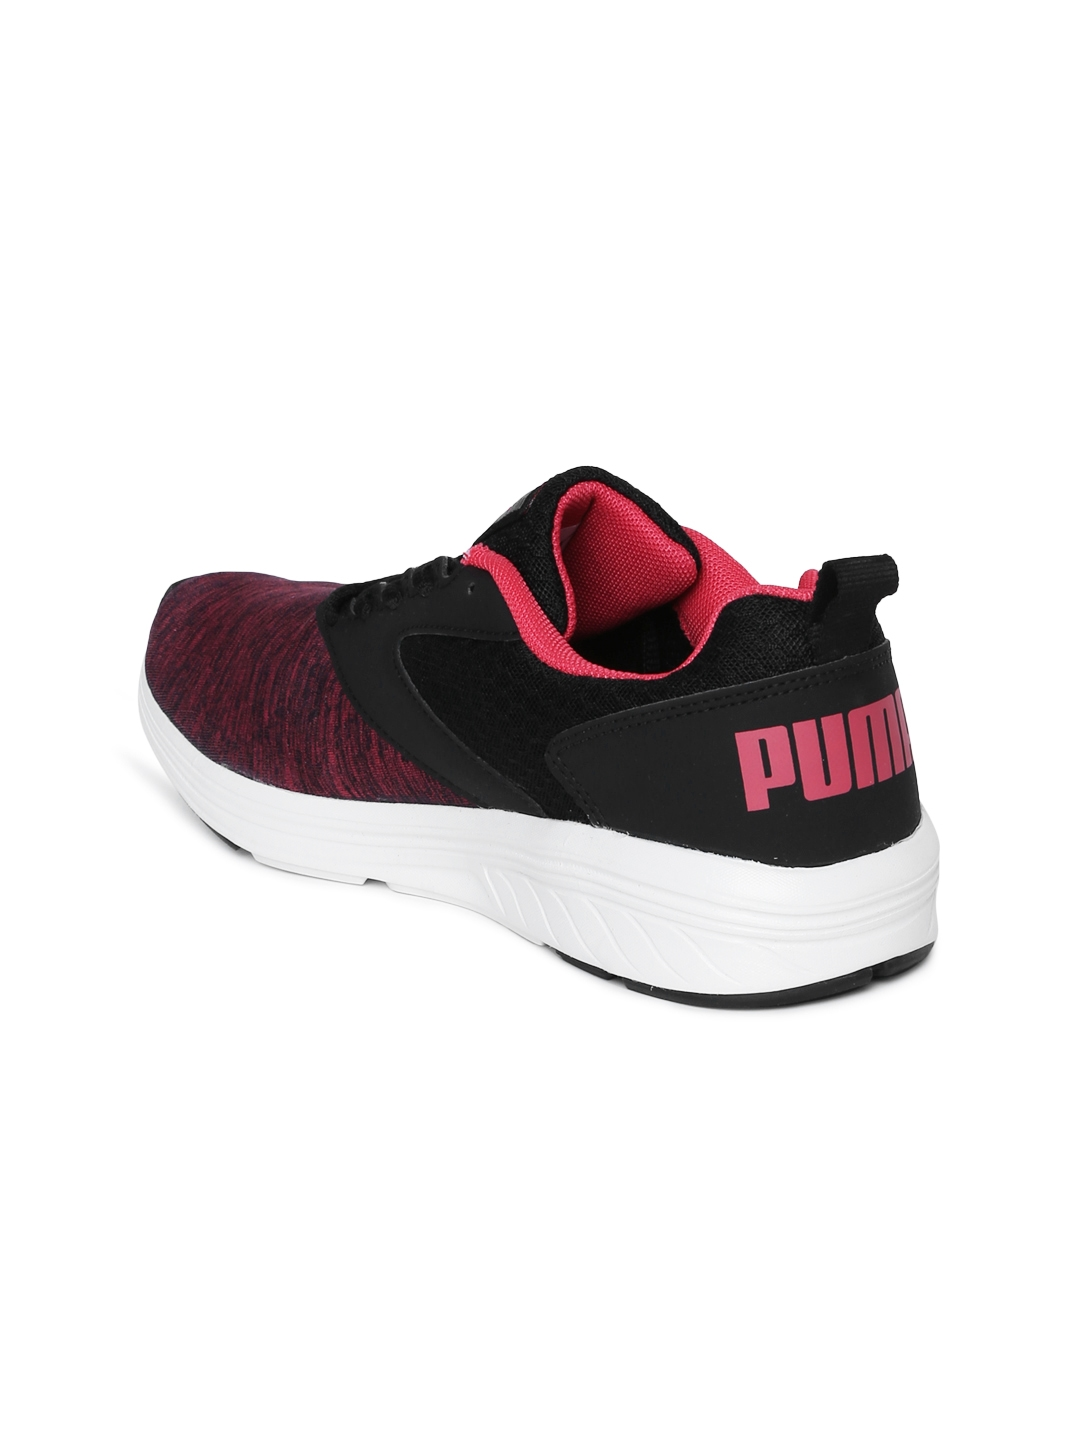 1a193725887ad8 Buy Puma Women Black   Pink Comet IPD Running Shoes - Sports Shoes ...